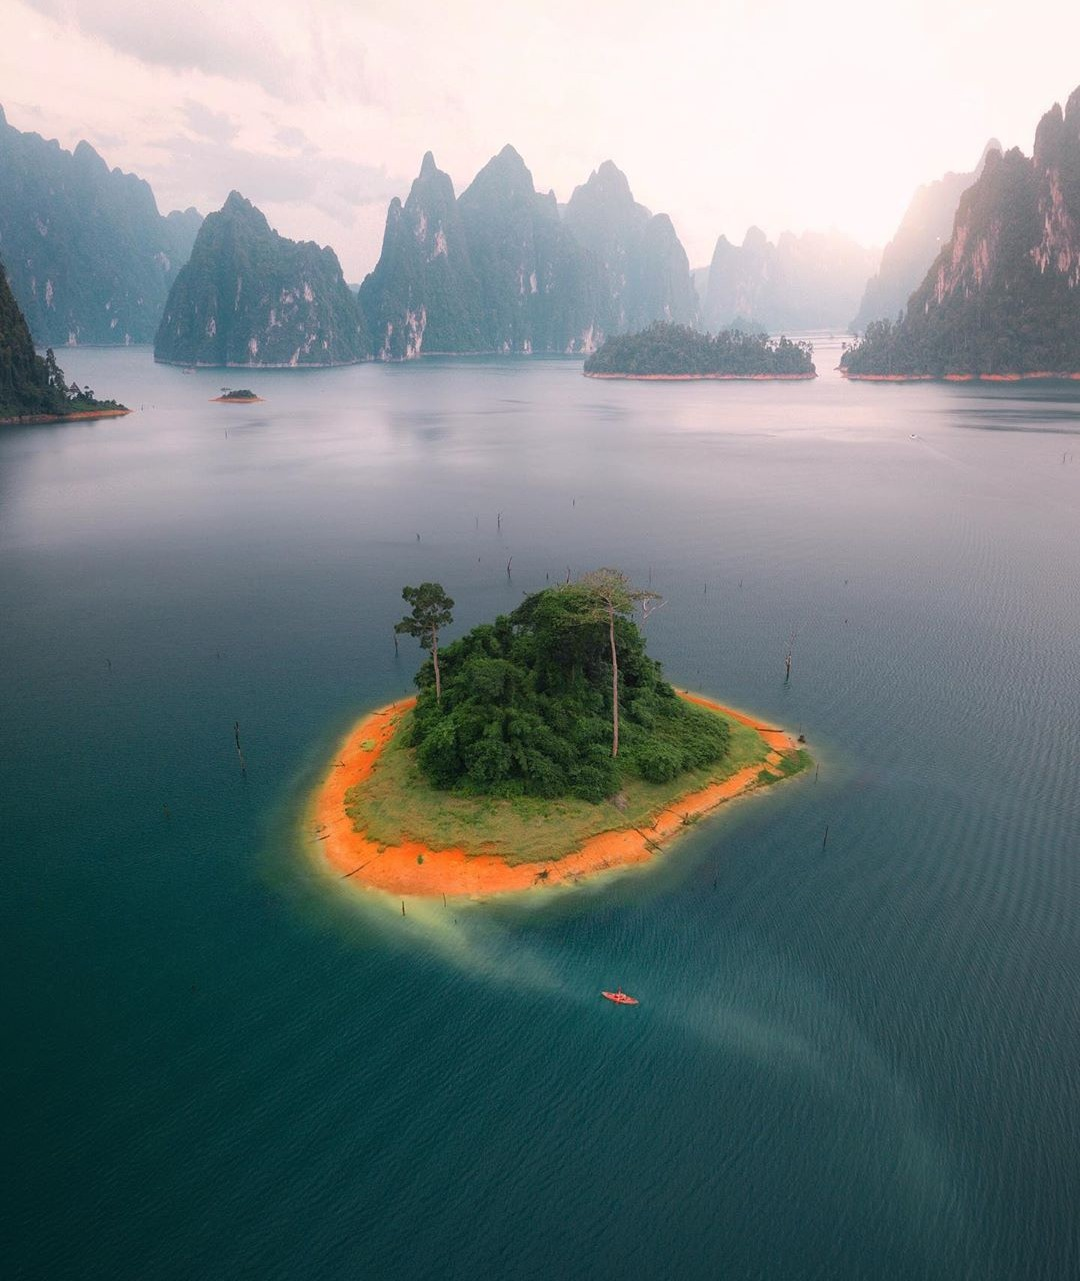 Small island in the middle of Cheow Lan Lake with a drone photographed